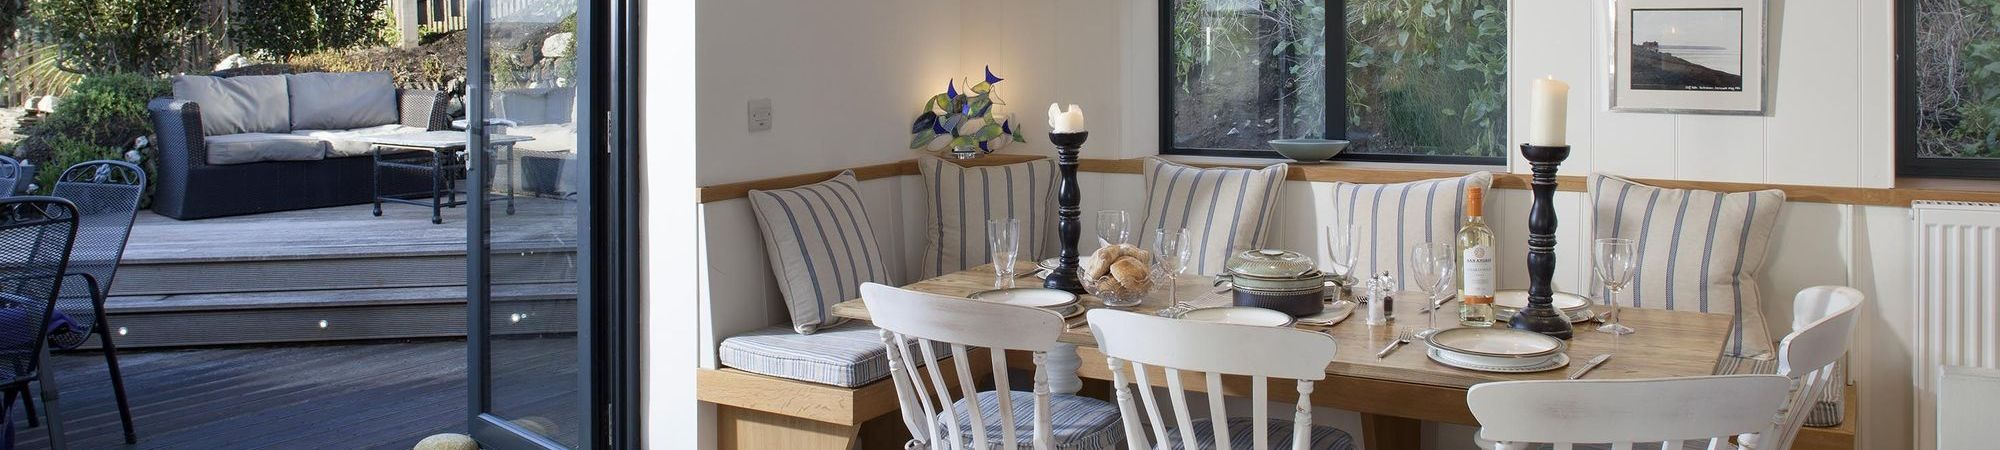 Trigg Cottage - Porthleven Holiday Cottages